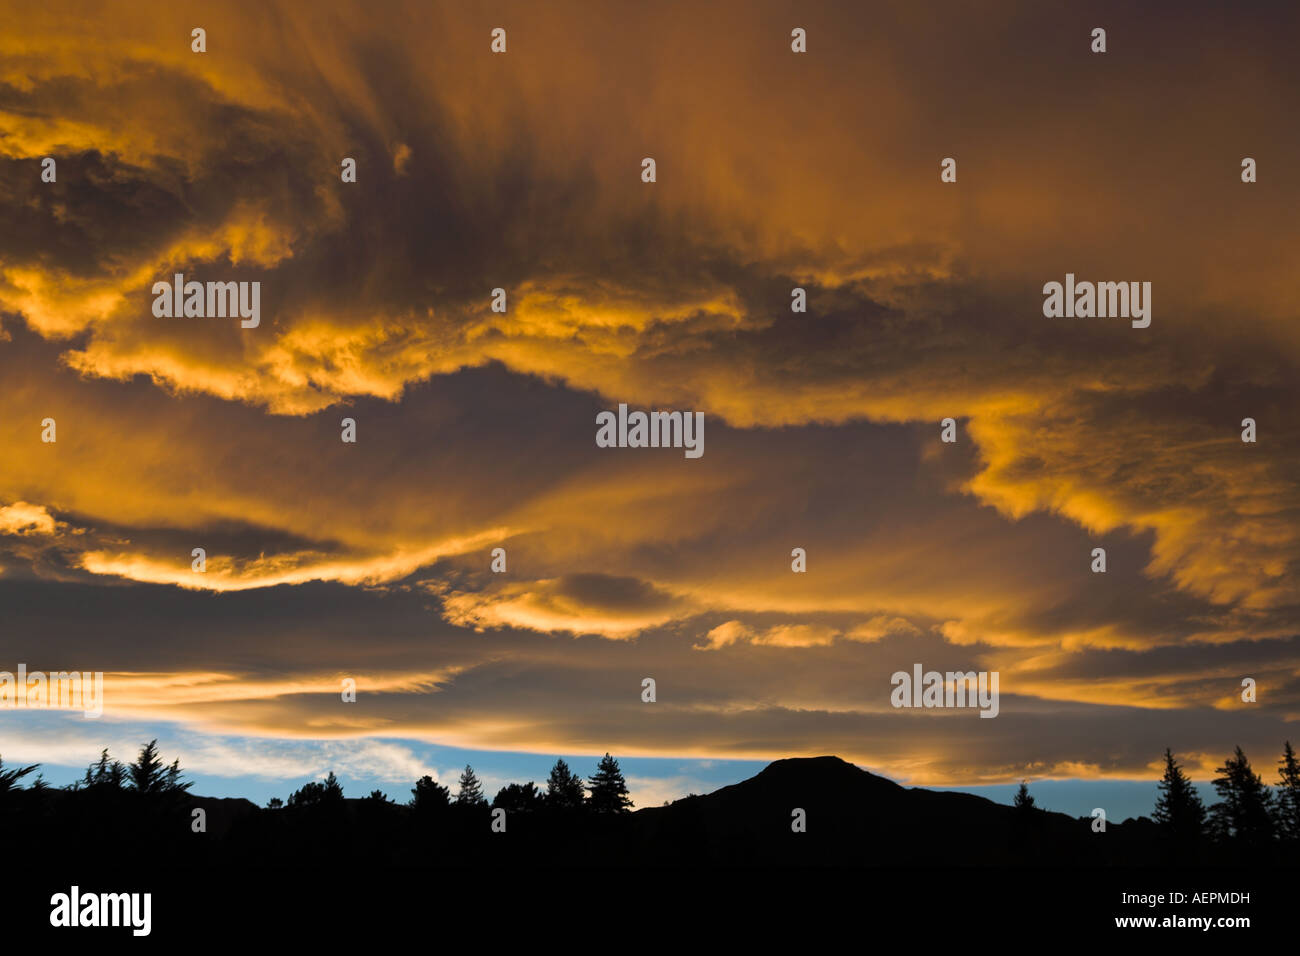 Spectacular sunset above the town of Hanmer Springs, South Island, New Zealand - Stock Image